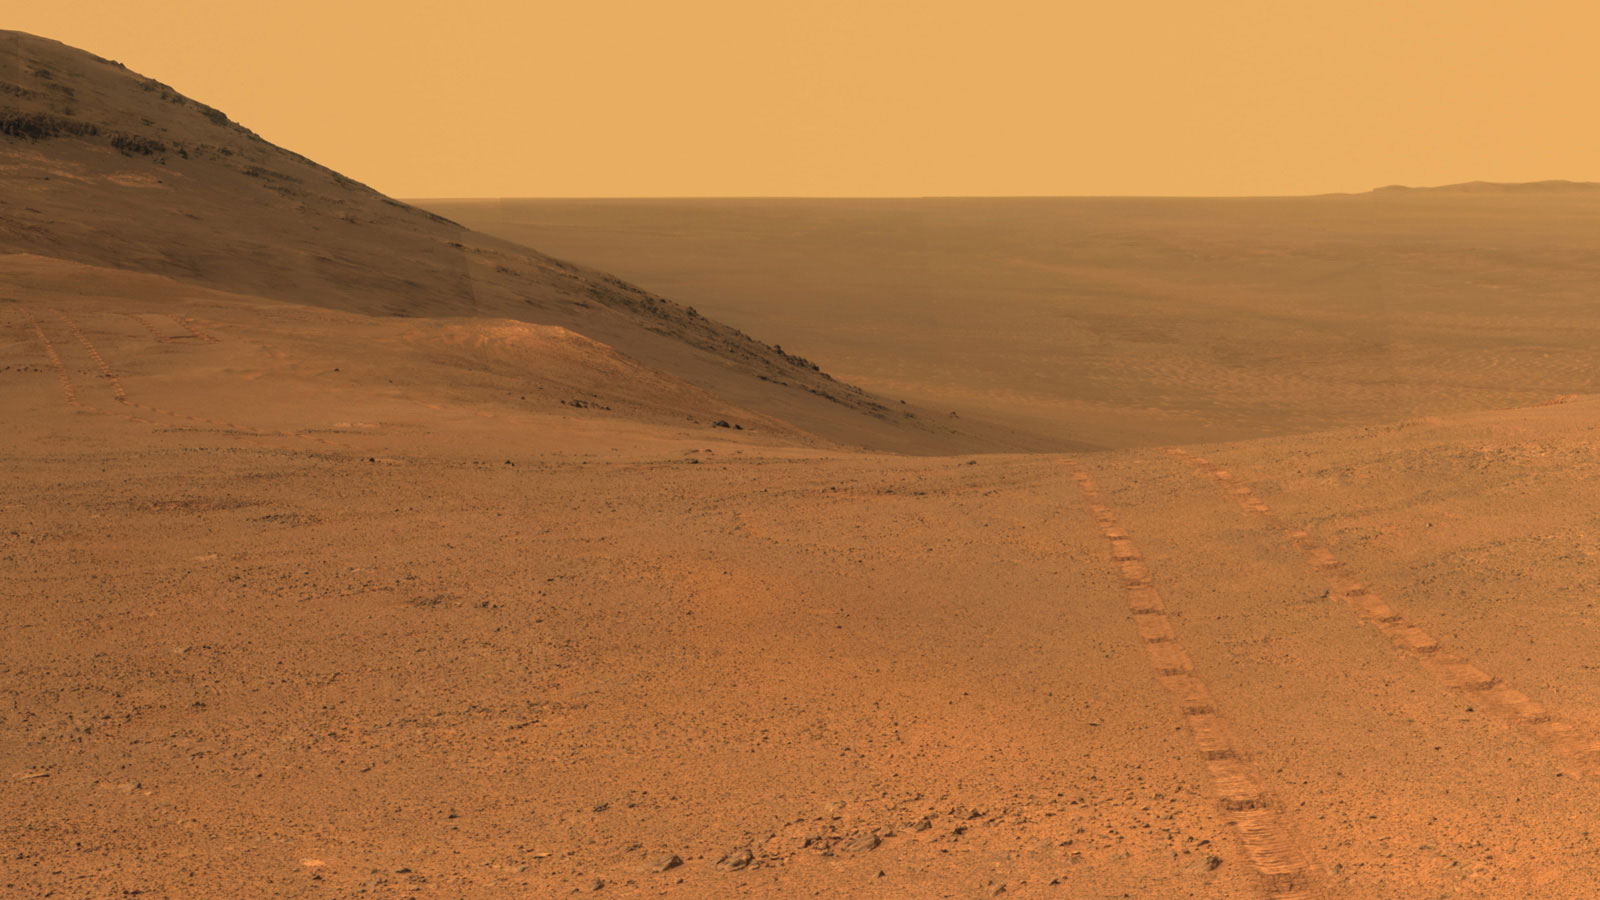 mars rover pictures today - photo #42